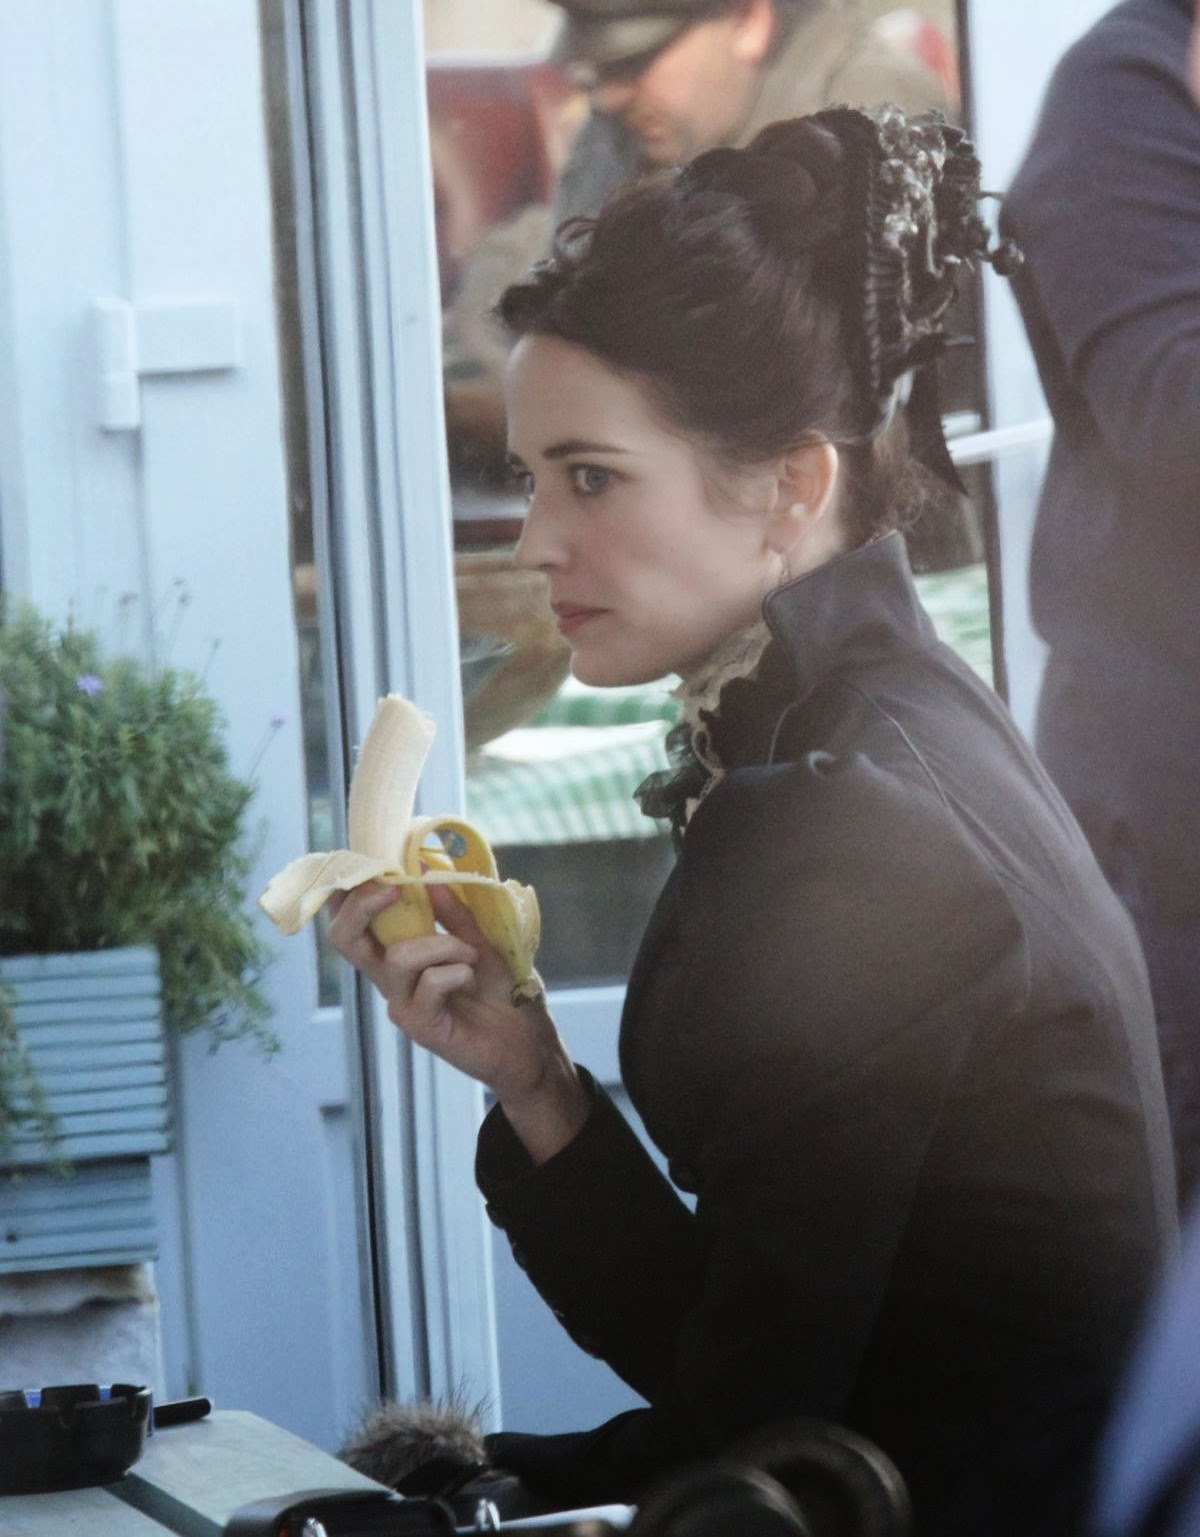 http://3.bp.blogspot.com/-1YJRFl5fipY/Ut2KXMeVIKI/AAAAAAAAQgw/i2L_731XqtQ/s1600/eva-green-on-the-set-of-penny-dreadful-in-ireland_1.jpg